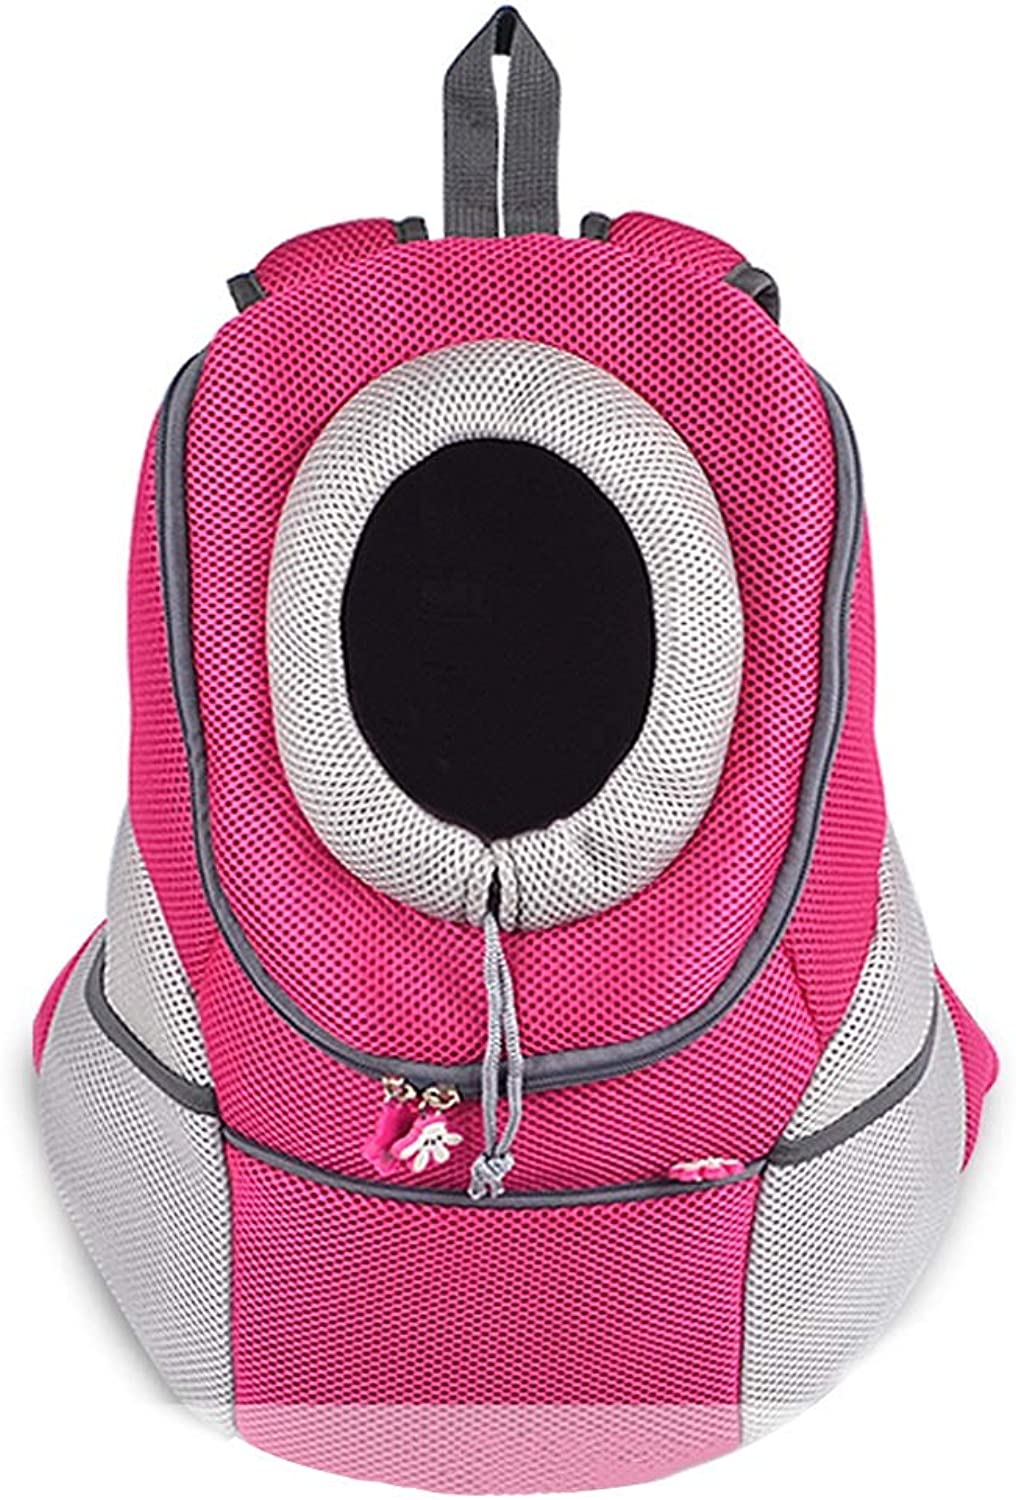 Backpacks Dog Backpack Outing Cat Backpack Portable Pet Travel Bag Outdoor Chest Backpack Fashion Breathable Pet Nest Foldable Household Pet Bag Bearing 3 5 8KG (color   Pink, Size   M)